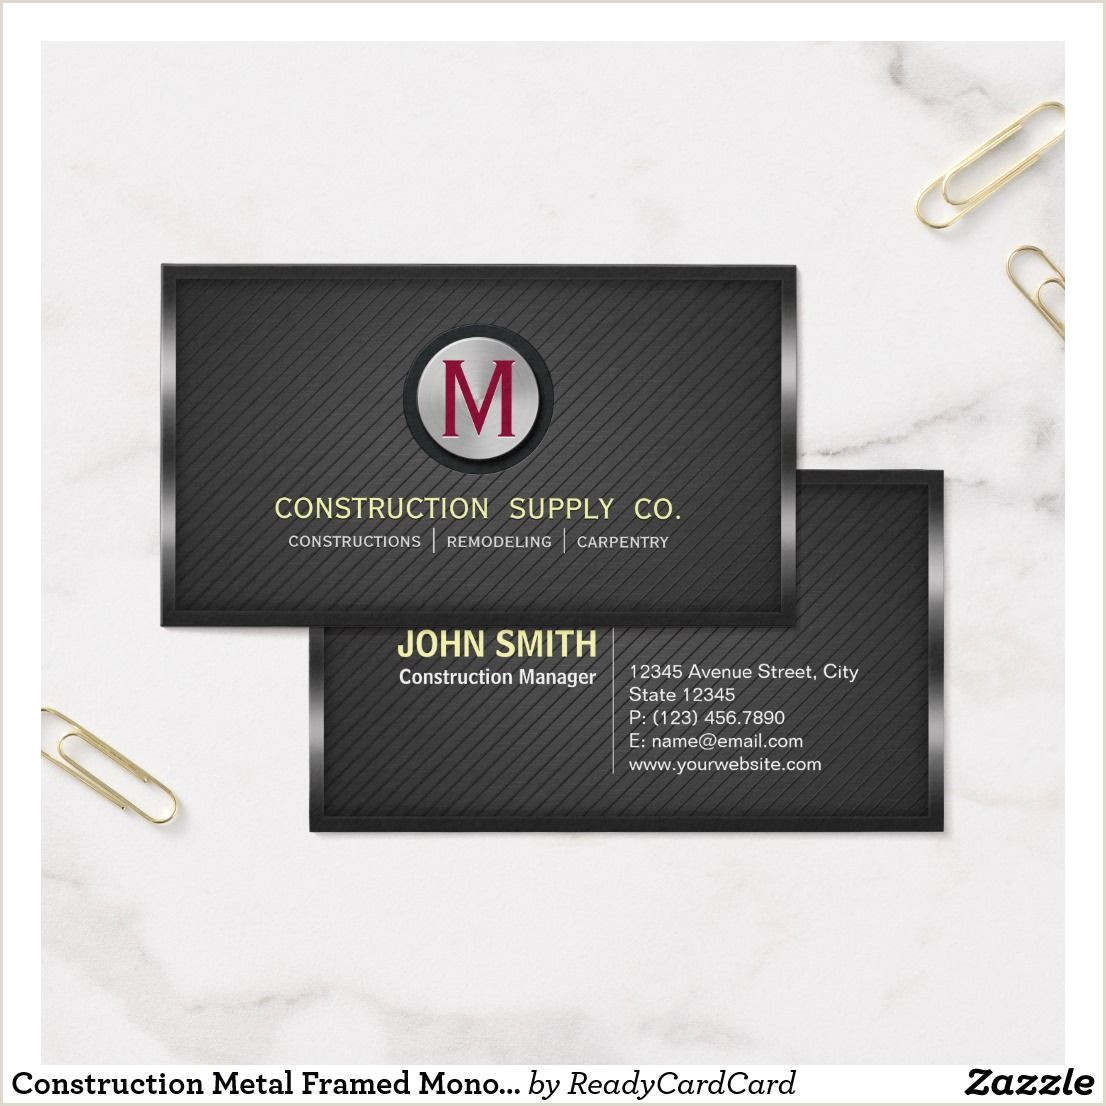 Business Cards For Construction Unique Construction Metal Framed Monogram Twill Material Business